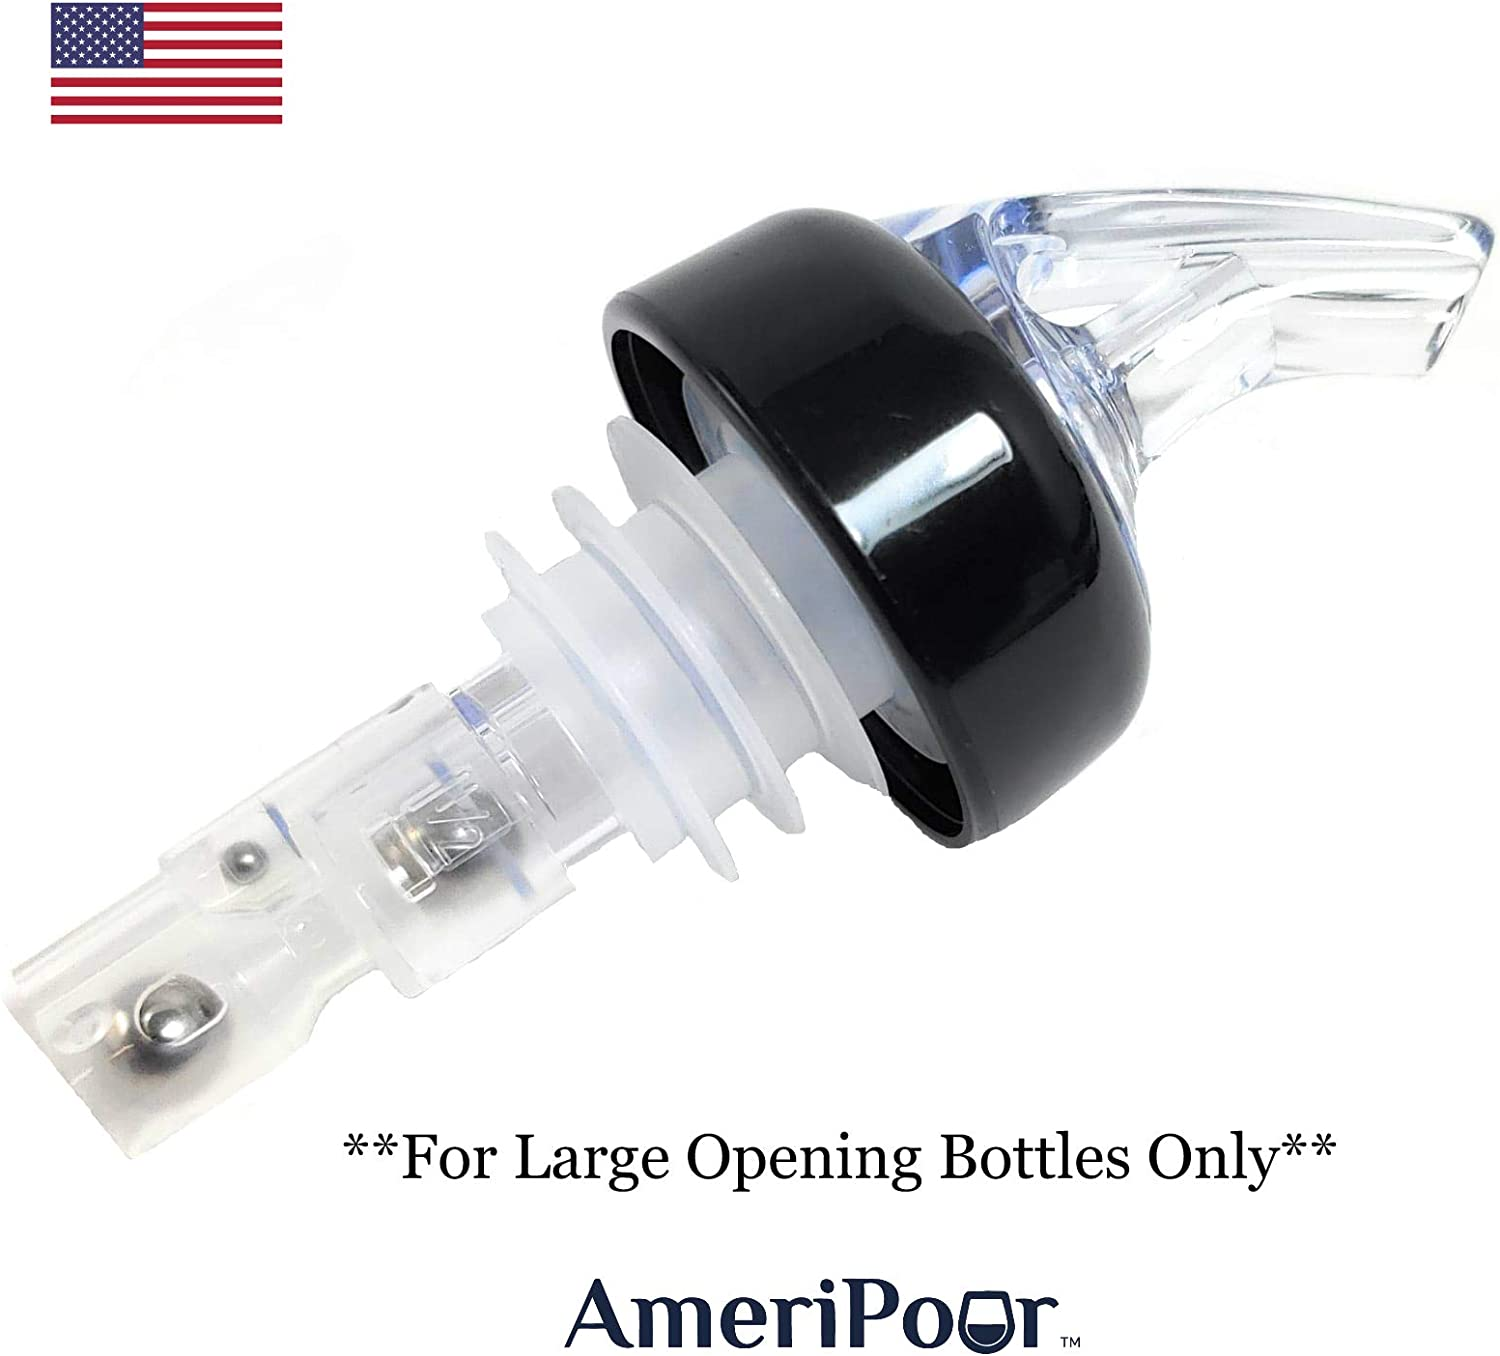 .75 Just A Perfect Cocktail Pour Everytime Bar Spouts That Dont Leak Great for Wine Too! Made 100/% In The USA Collared Measured Pourer AmeriPour 3pk No Cracks Liquor Bottle Pourers -